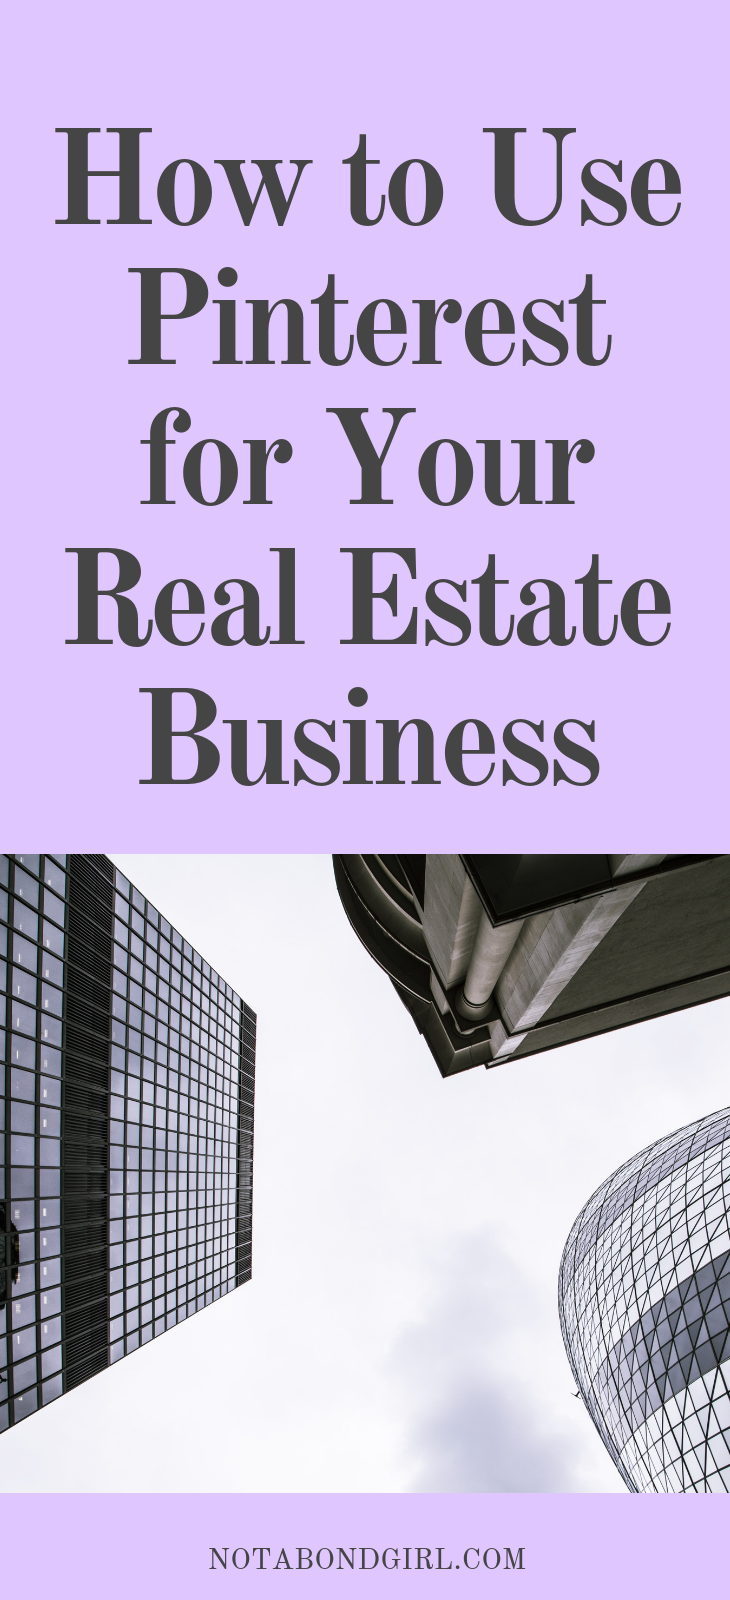 How Realtors Can Use Pinterest for Business Marketing